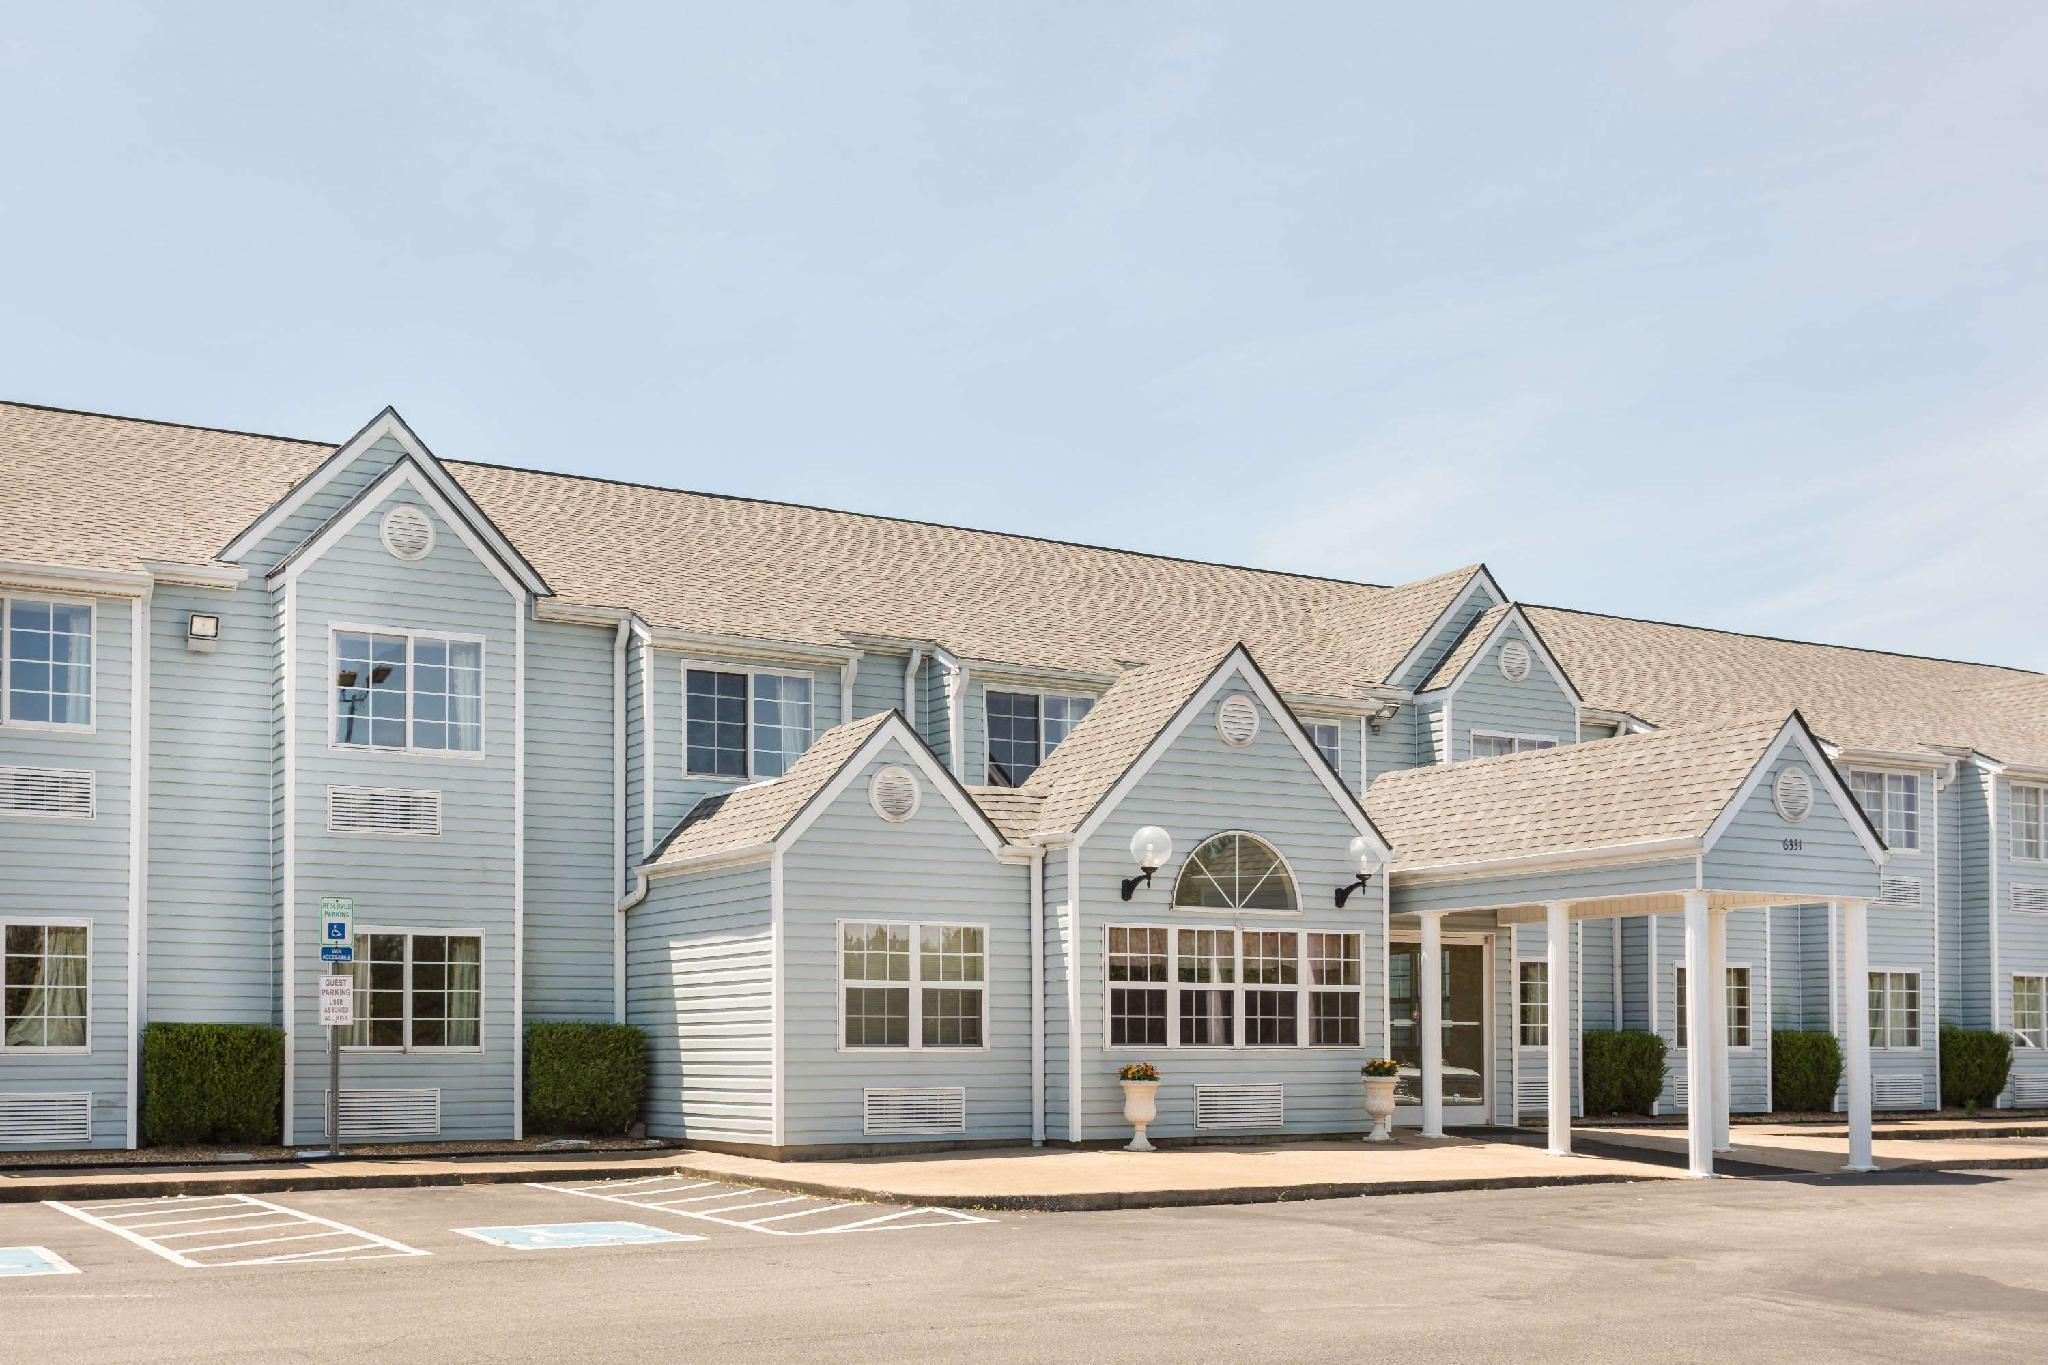 Microtel Inn And Suites By Wyndham Cottondale Tuscaloosa